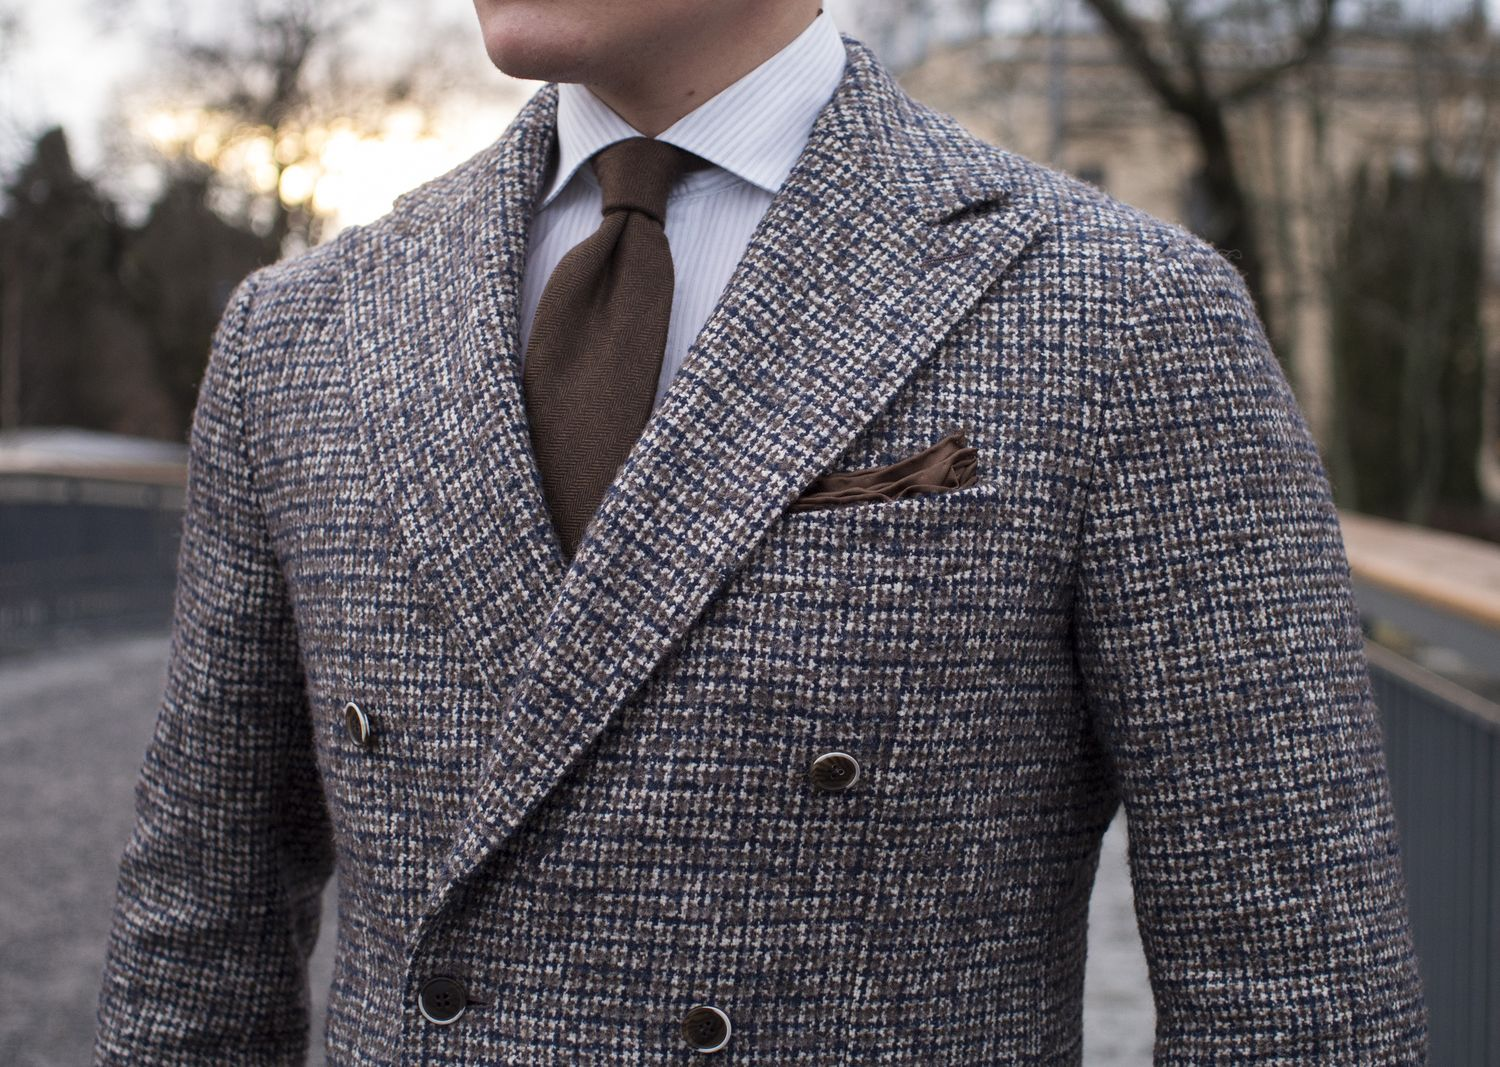 Double-Breasted Tweed Jacket For Winter